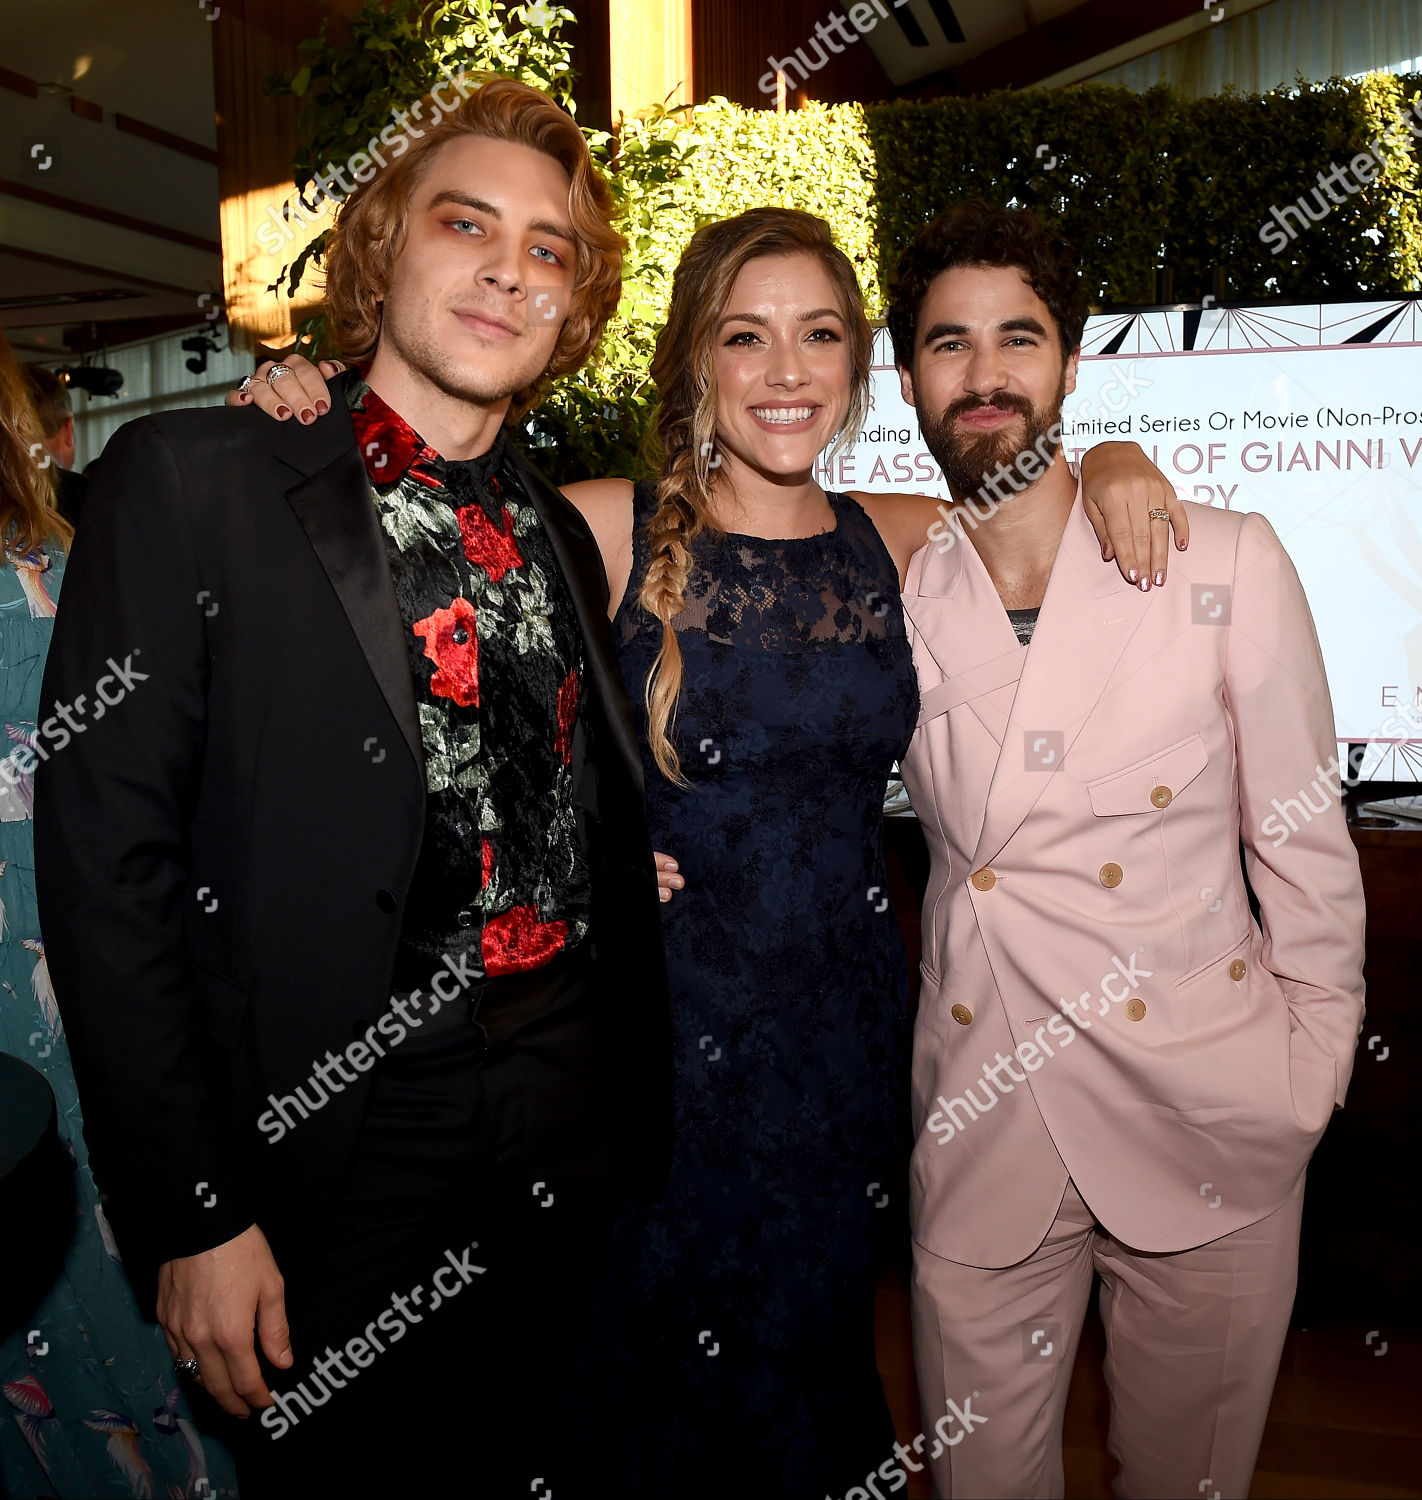 Cody Fern Mia Swier Darren Criss Editorial Stock Photo